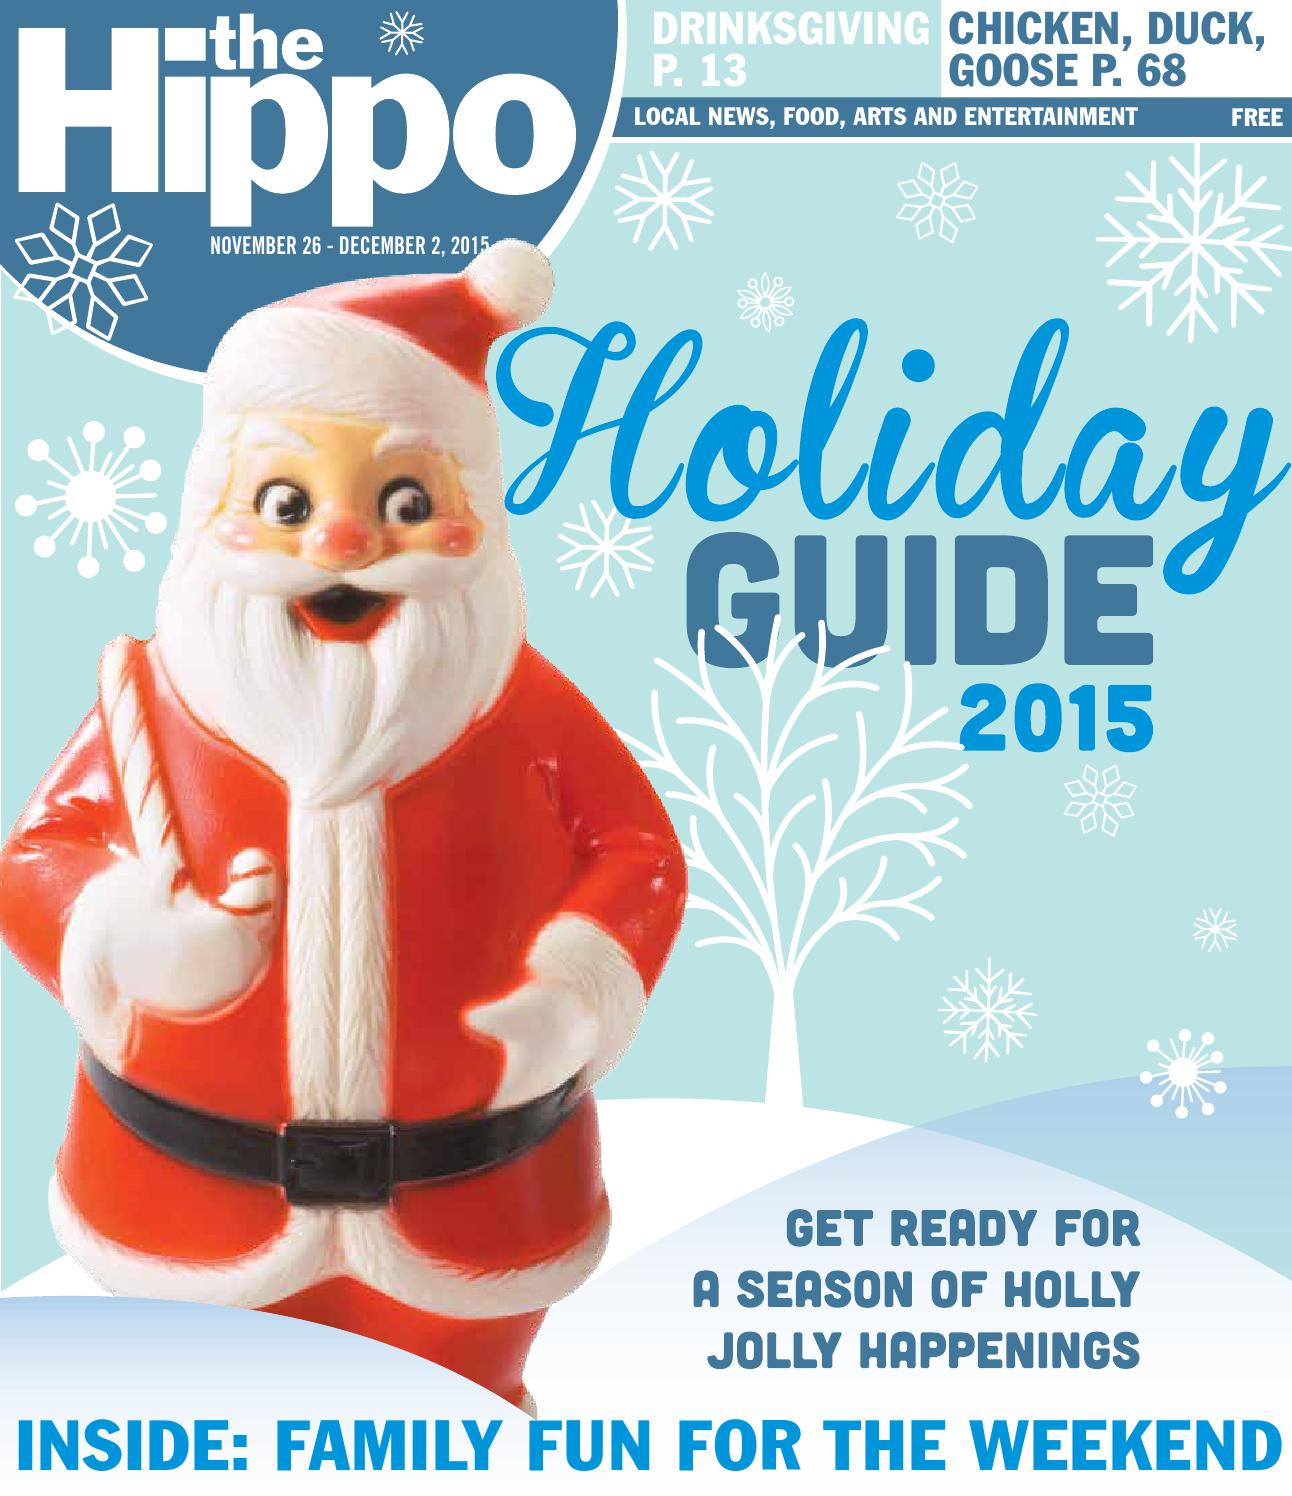 64ec21f3988 Hippo Holiday Guide 2015 by The Hippo - issuu